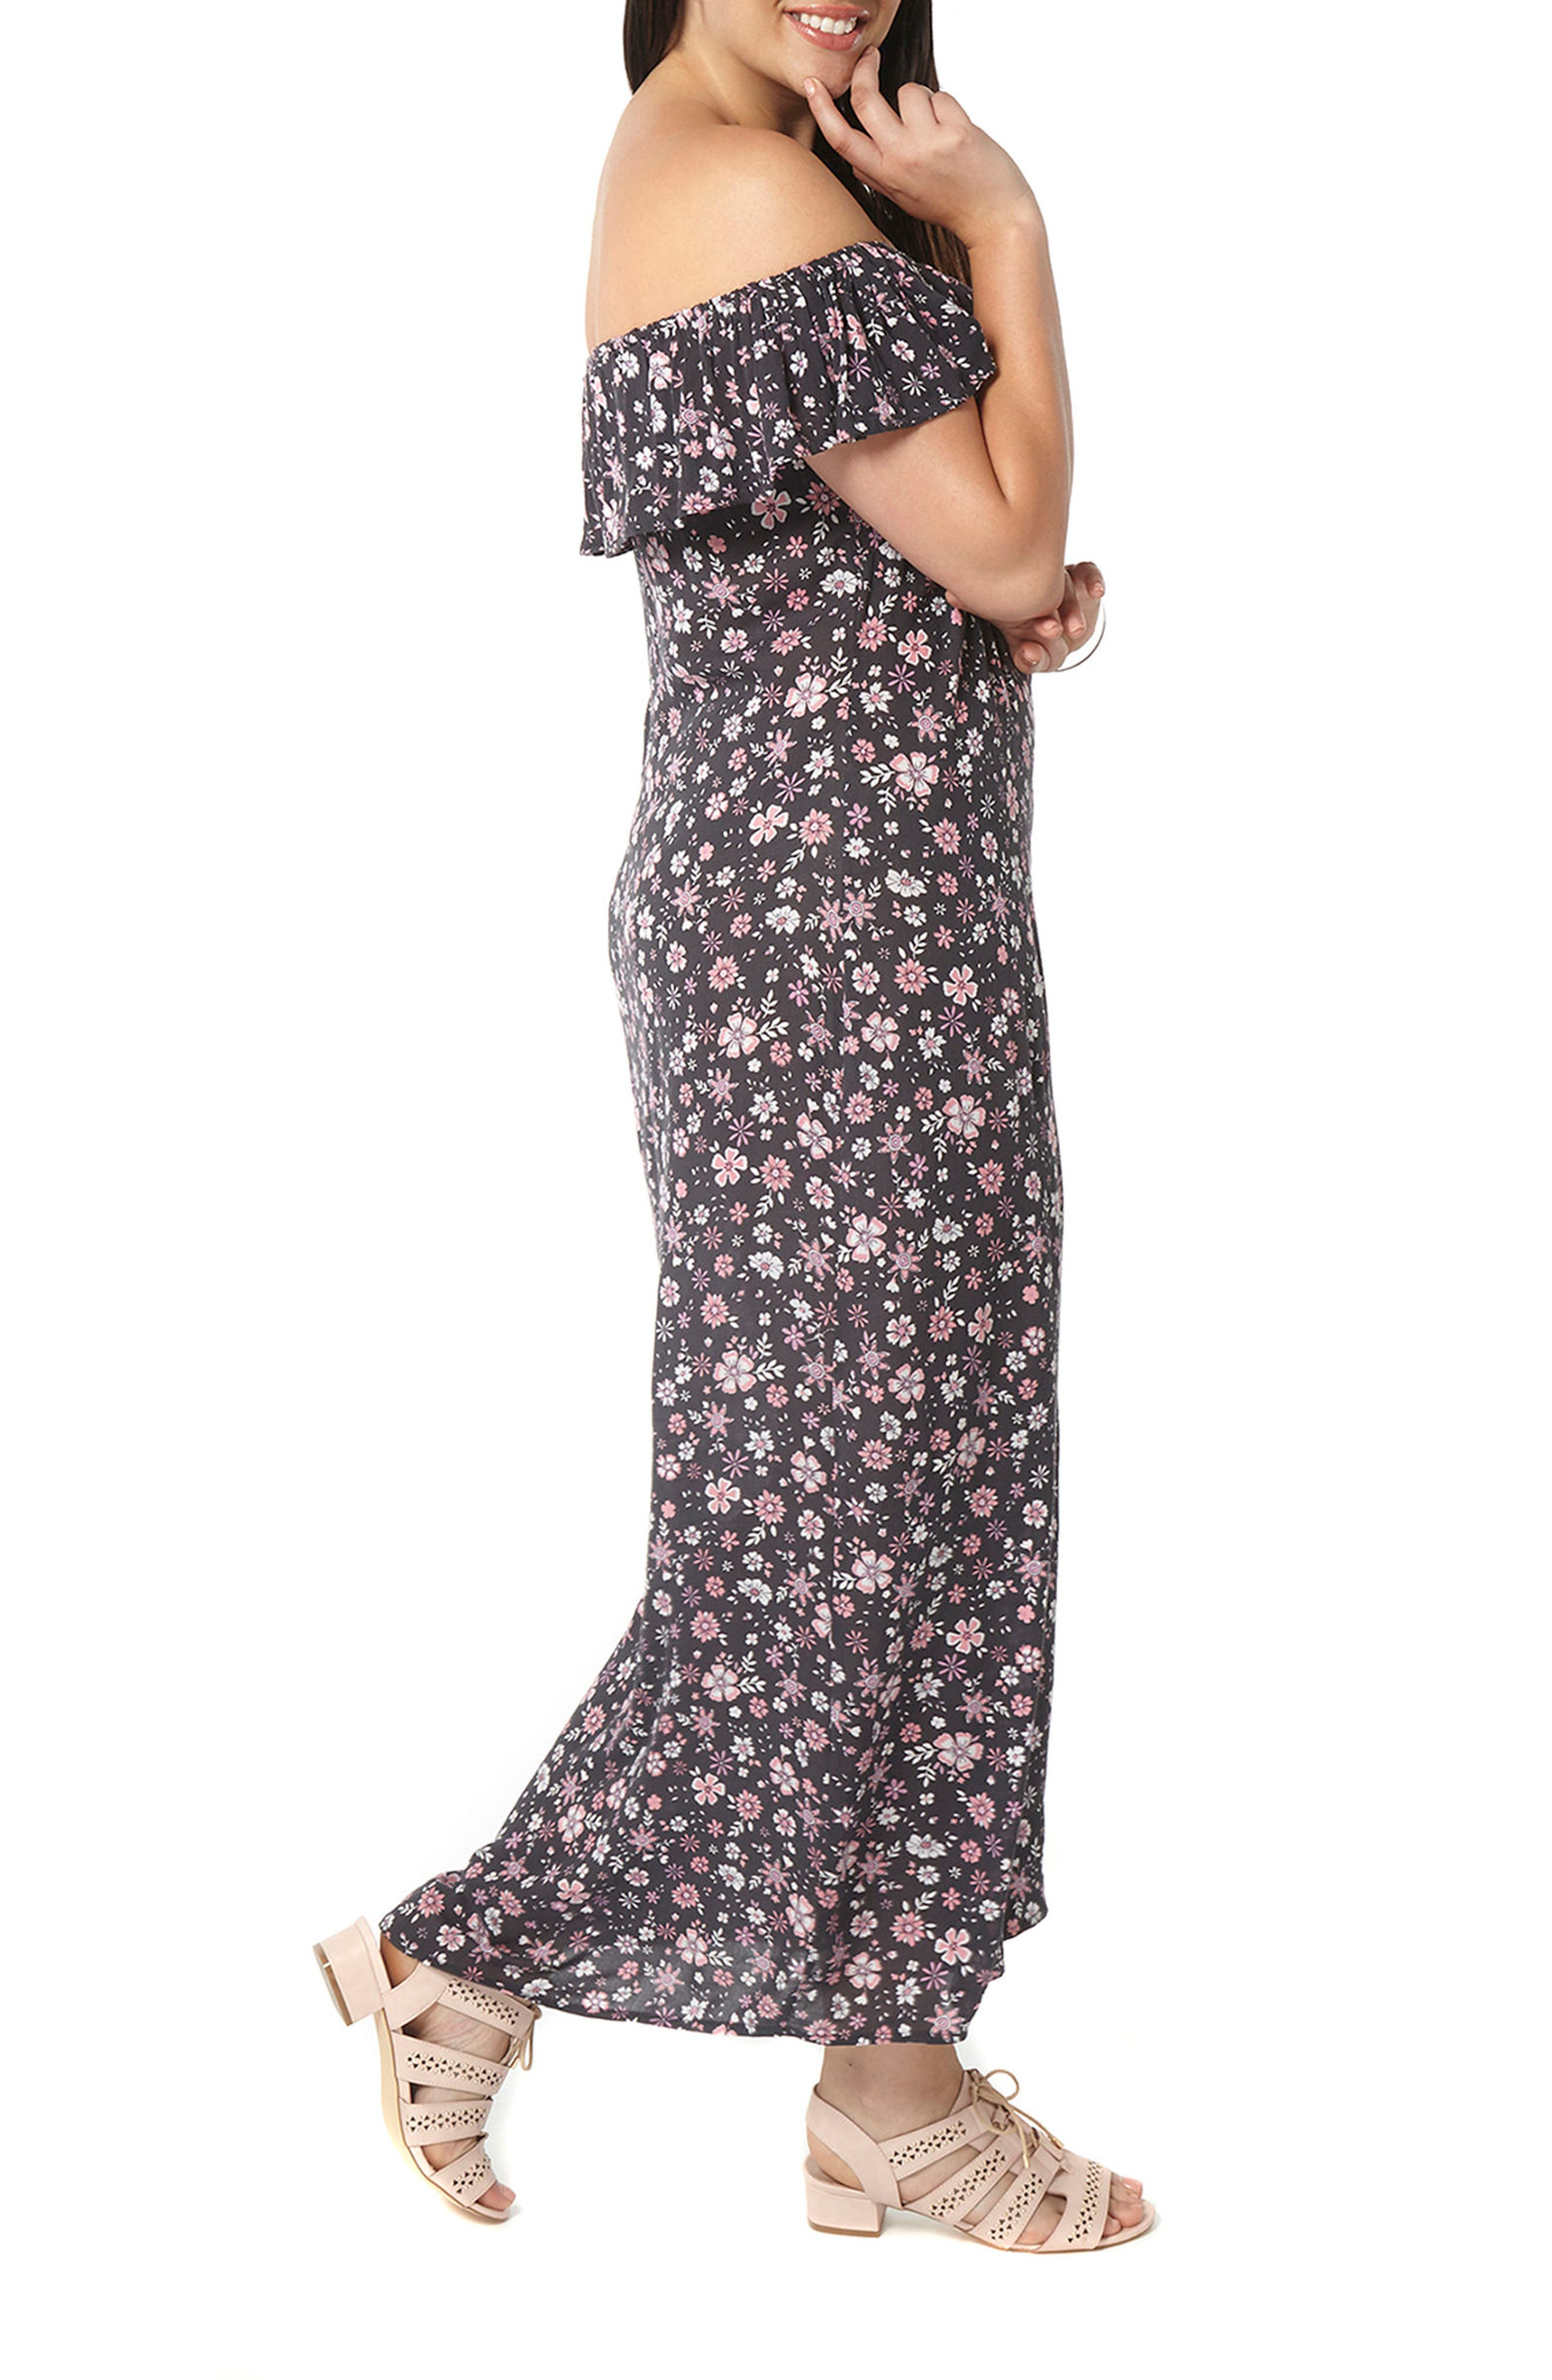 Alternate Image 1 Selected - Evans Ditsy Floral Convertible Maxi Dress (Plus Size)